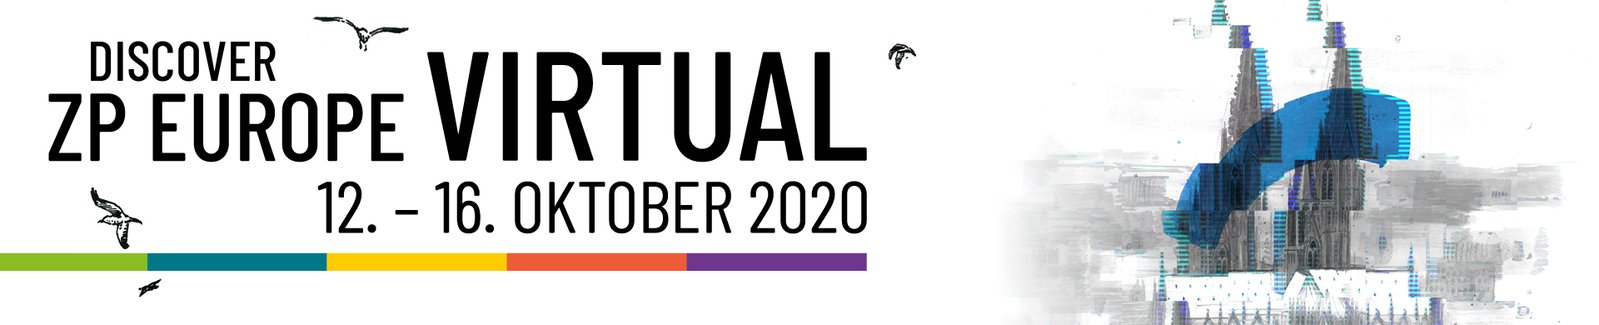 Press Release Zukunft Personal Europe 2020 Virtual